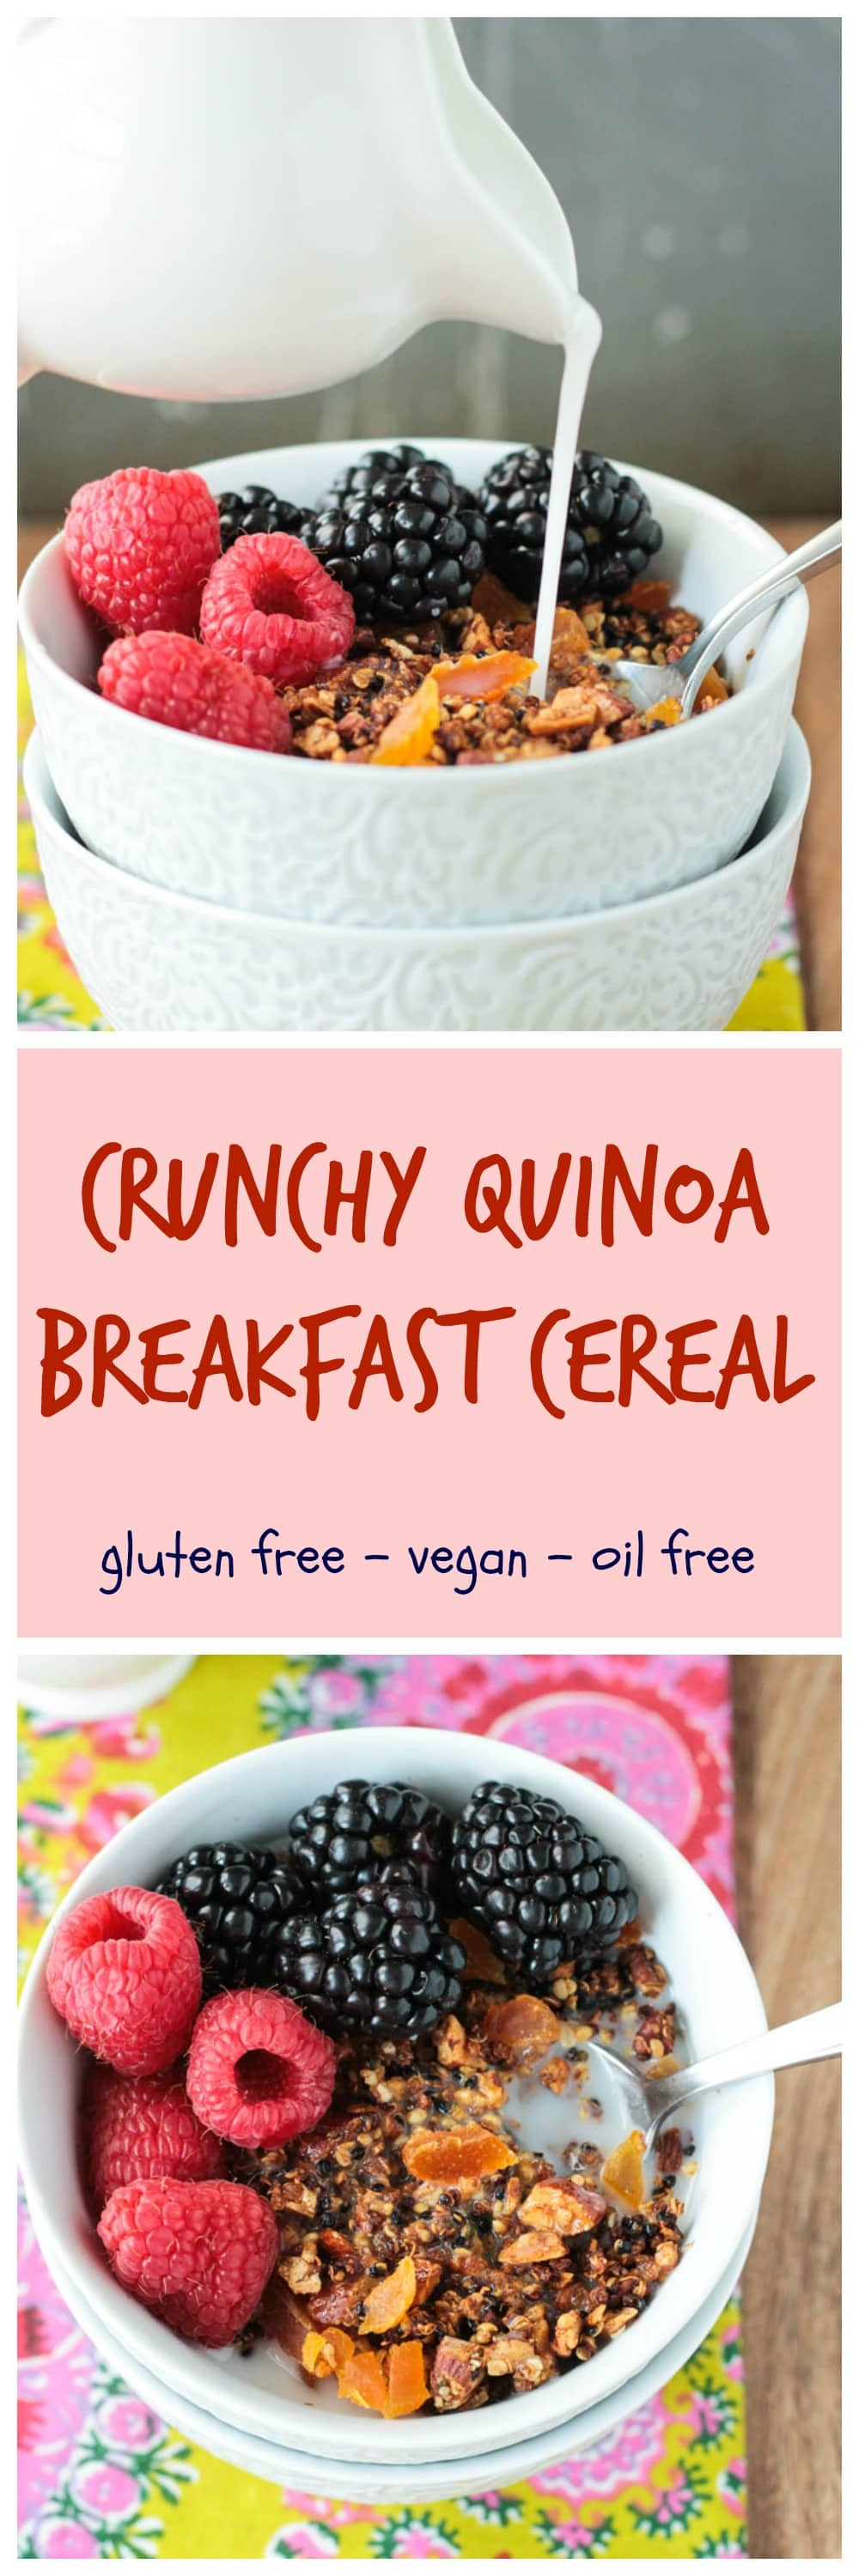 Crunchy Quinoa Breakfast Cereal - vegan | gluten free | oil free | refined sugar free | healthy | clean eating | whole foods | plant protein